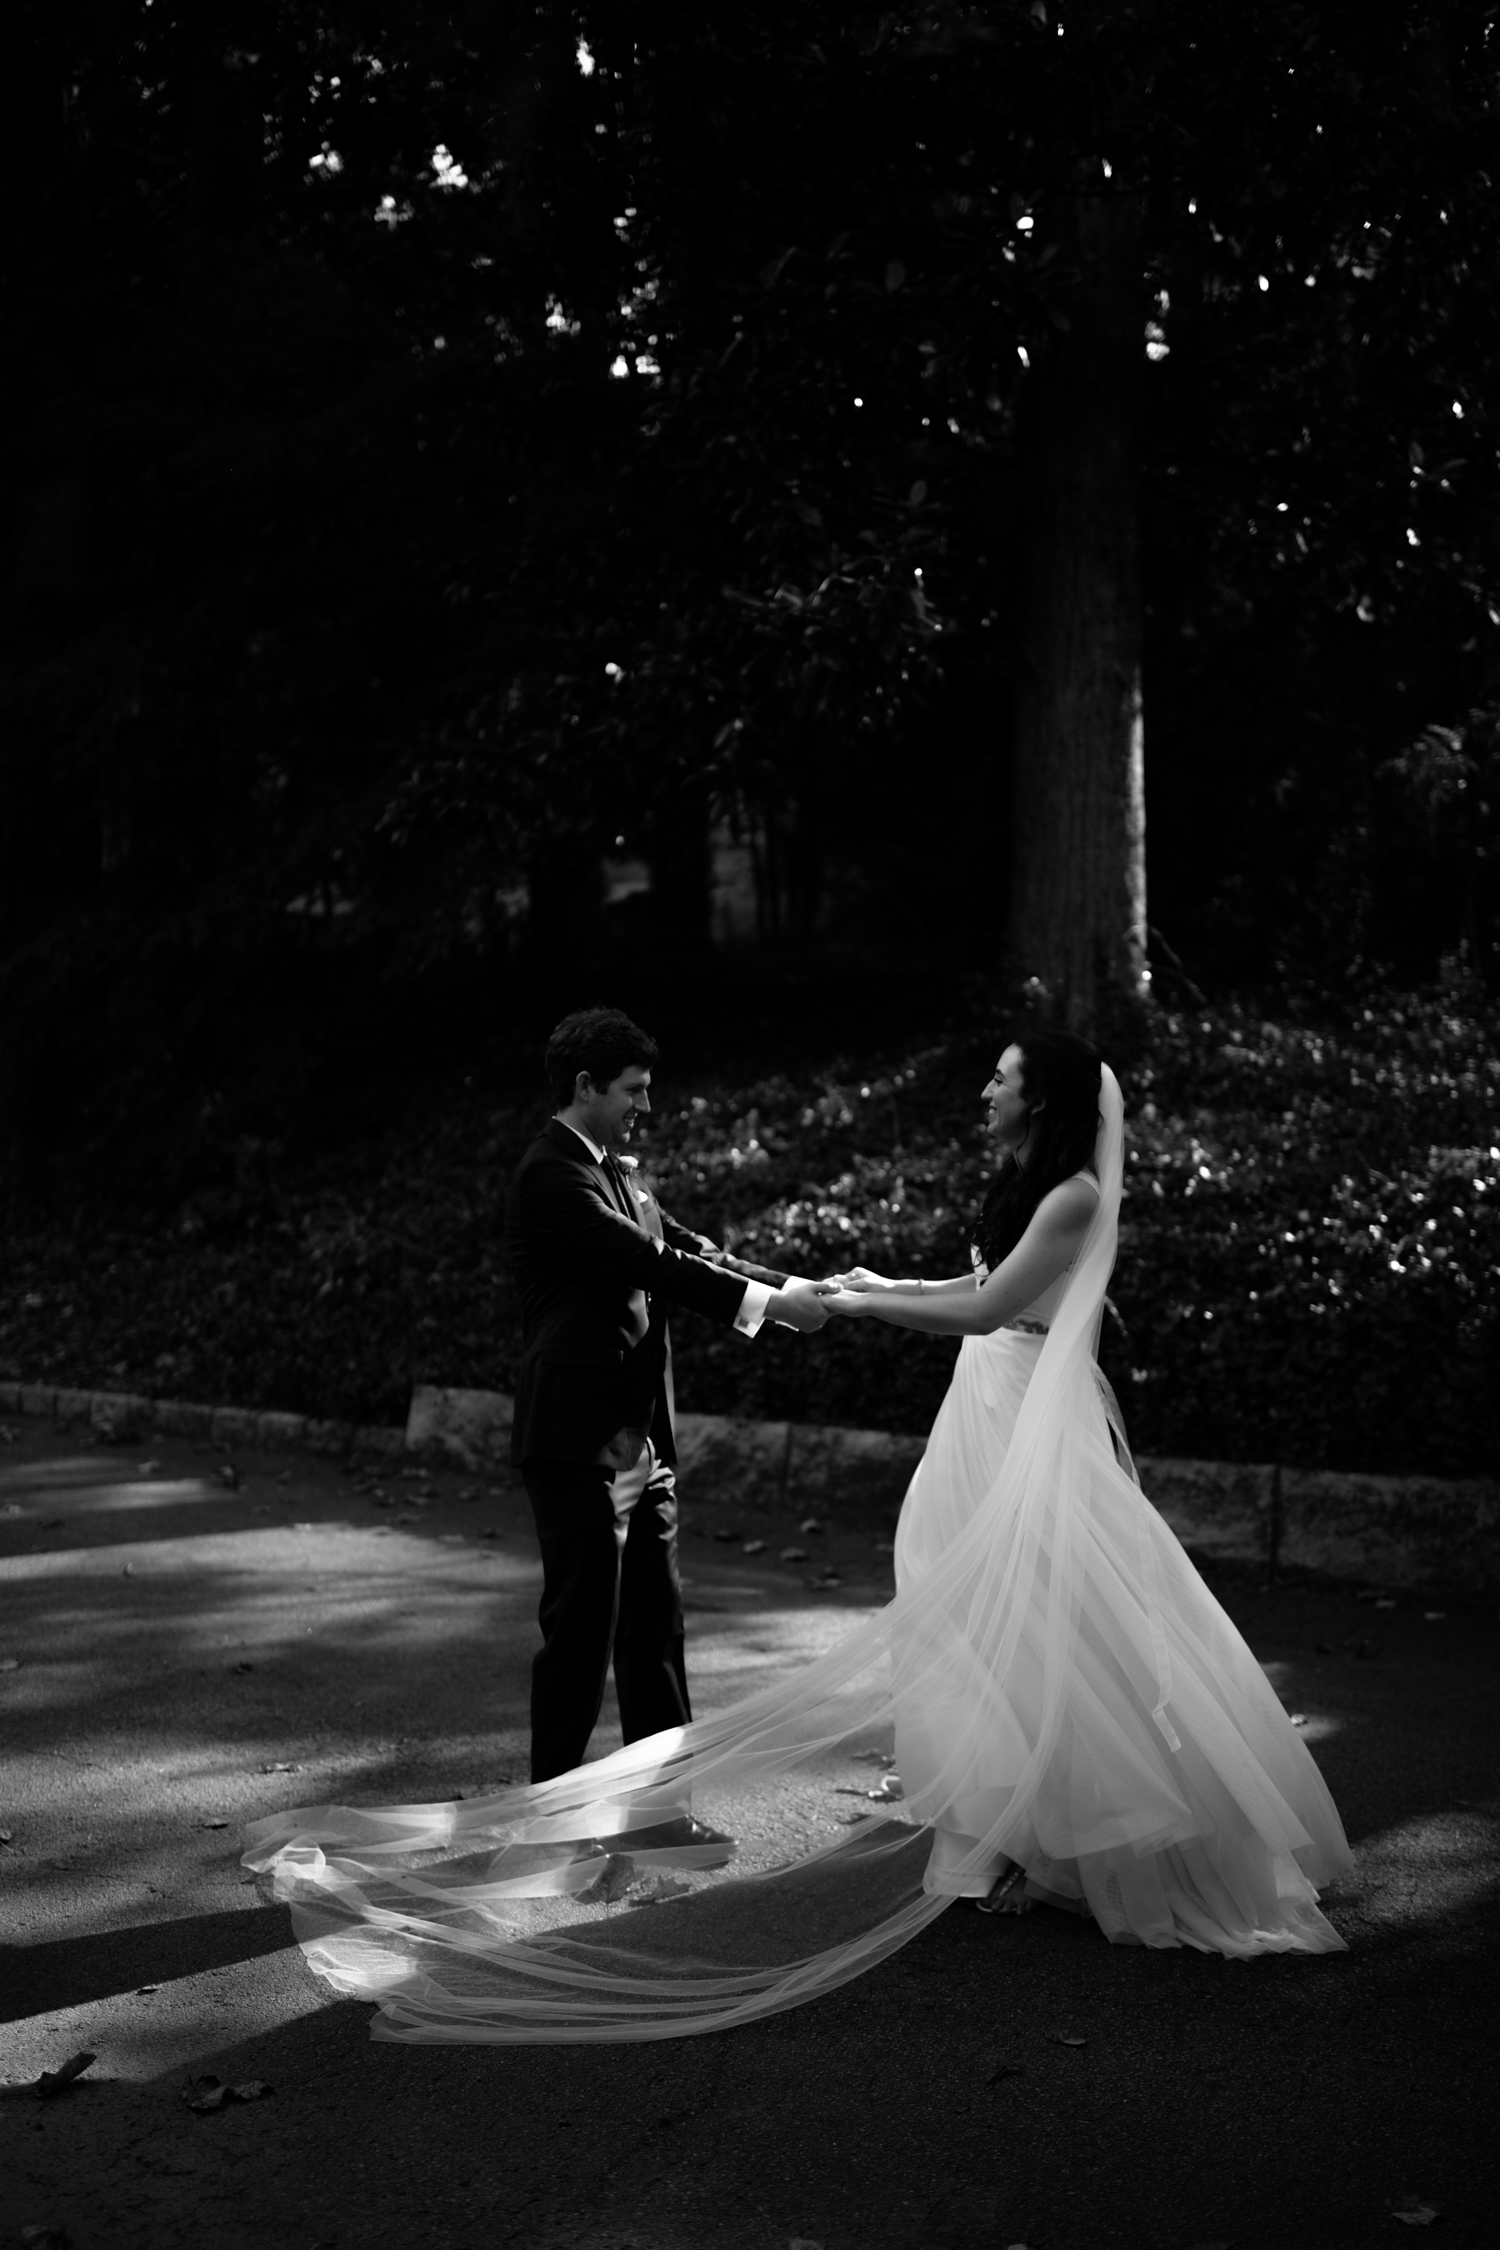 atlanta-nontraditional-wedding-photographer-118